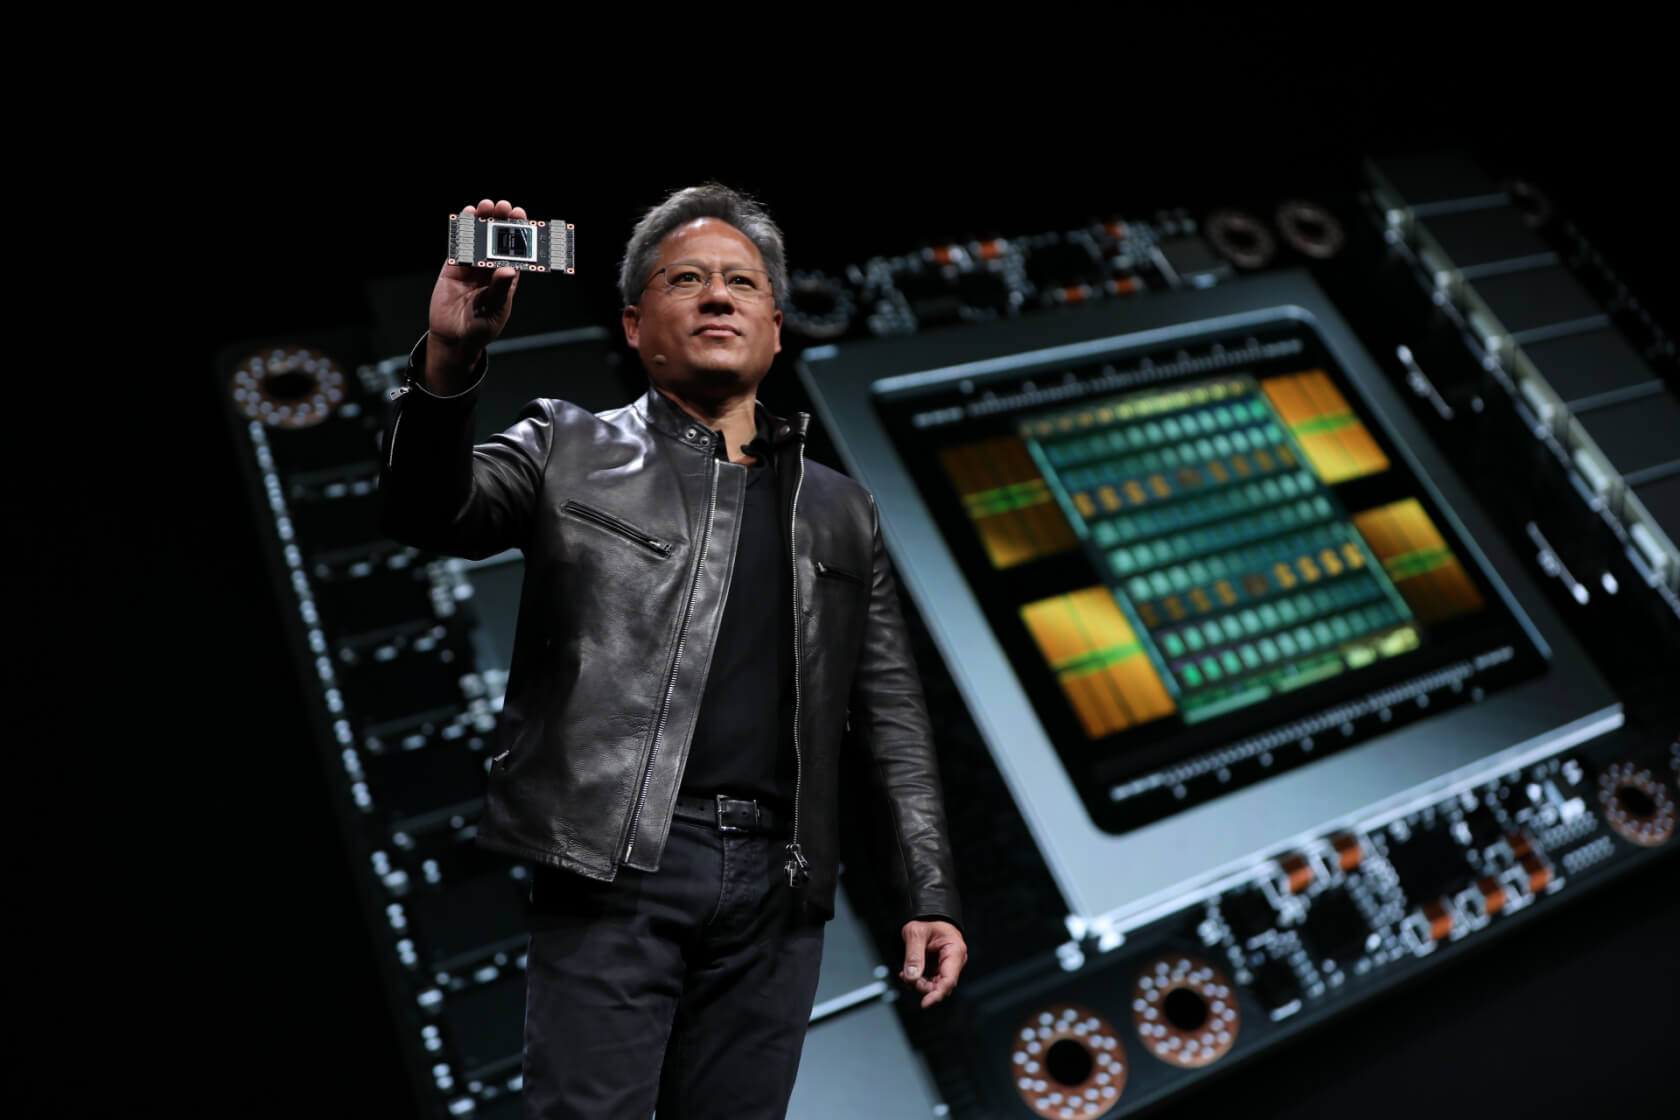 Nvidia Volta gaming GPUs are not in the 'foreseeable future'